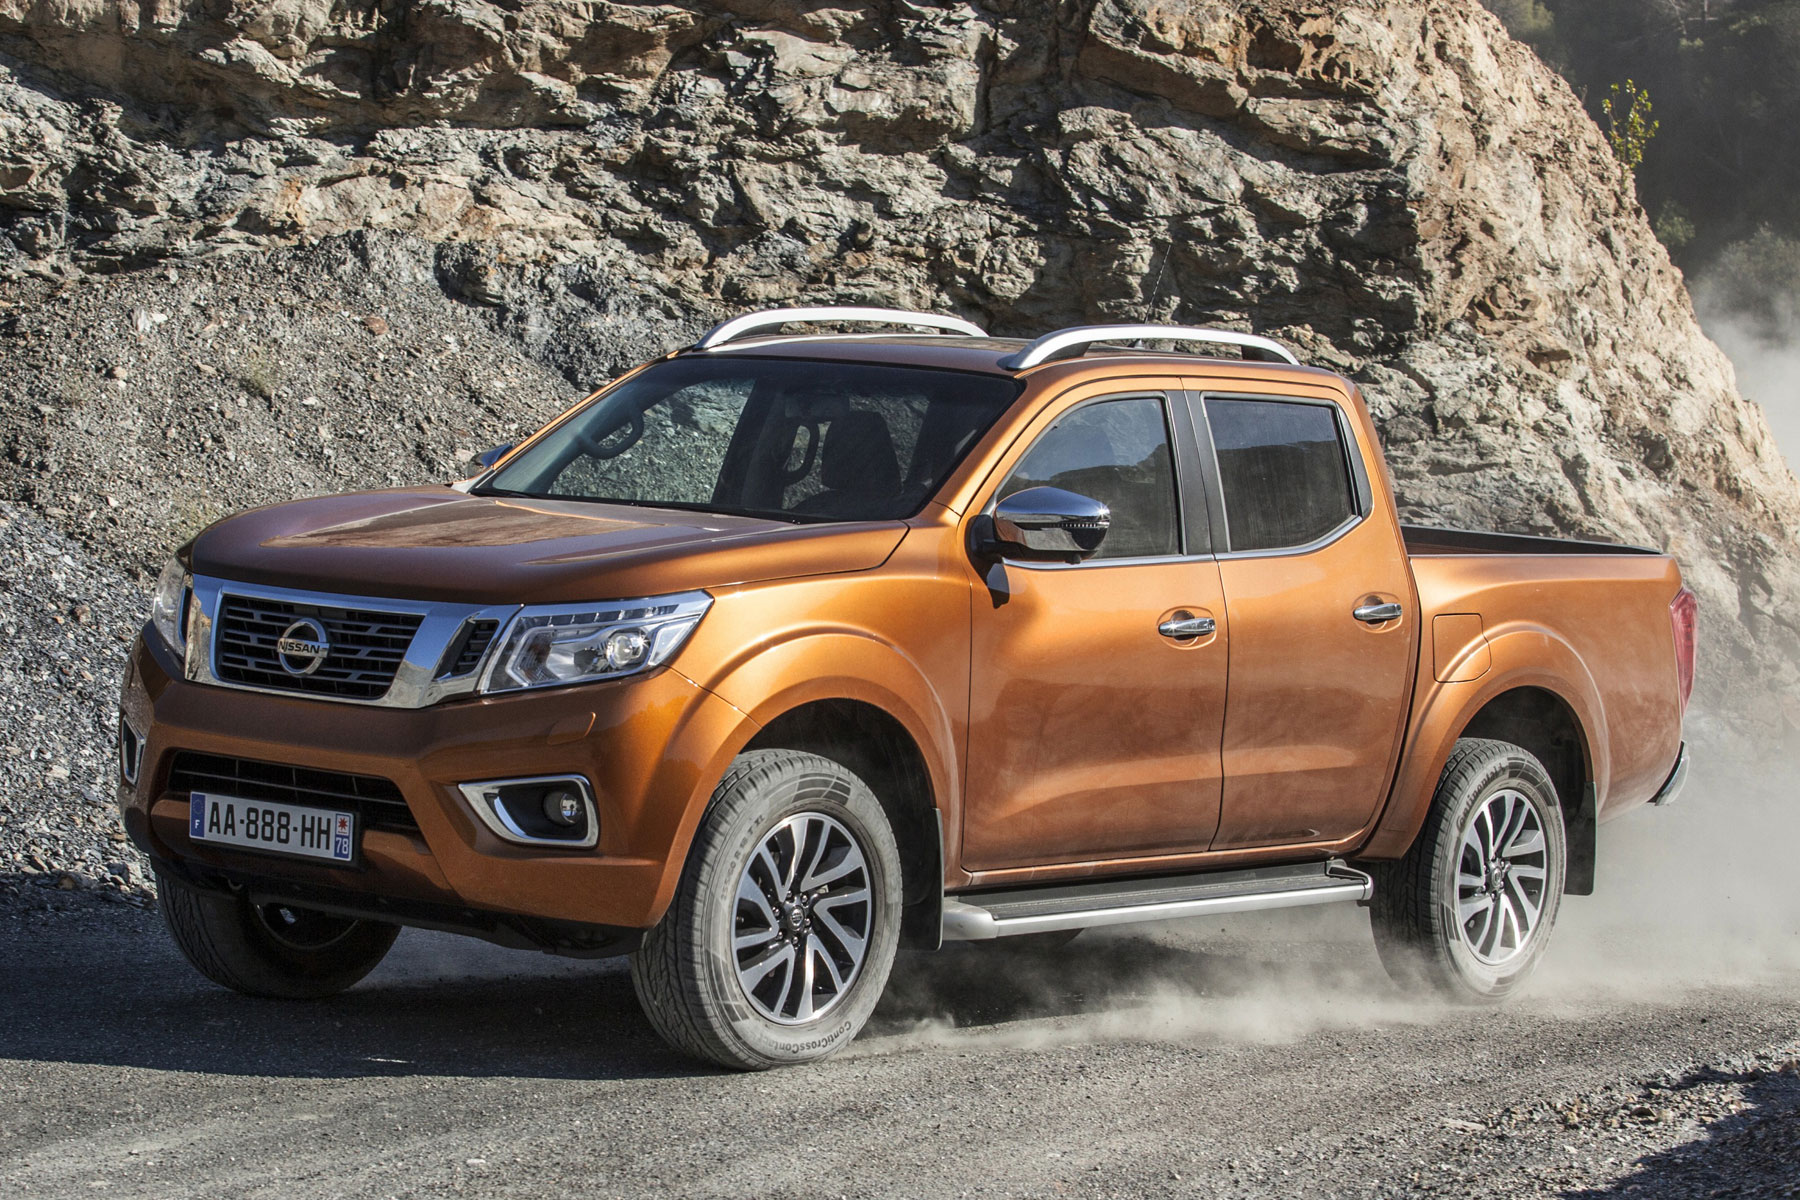 New Nissan Navara revealed ahead of Frankfurt debut